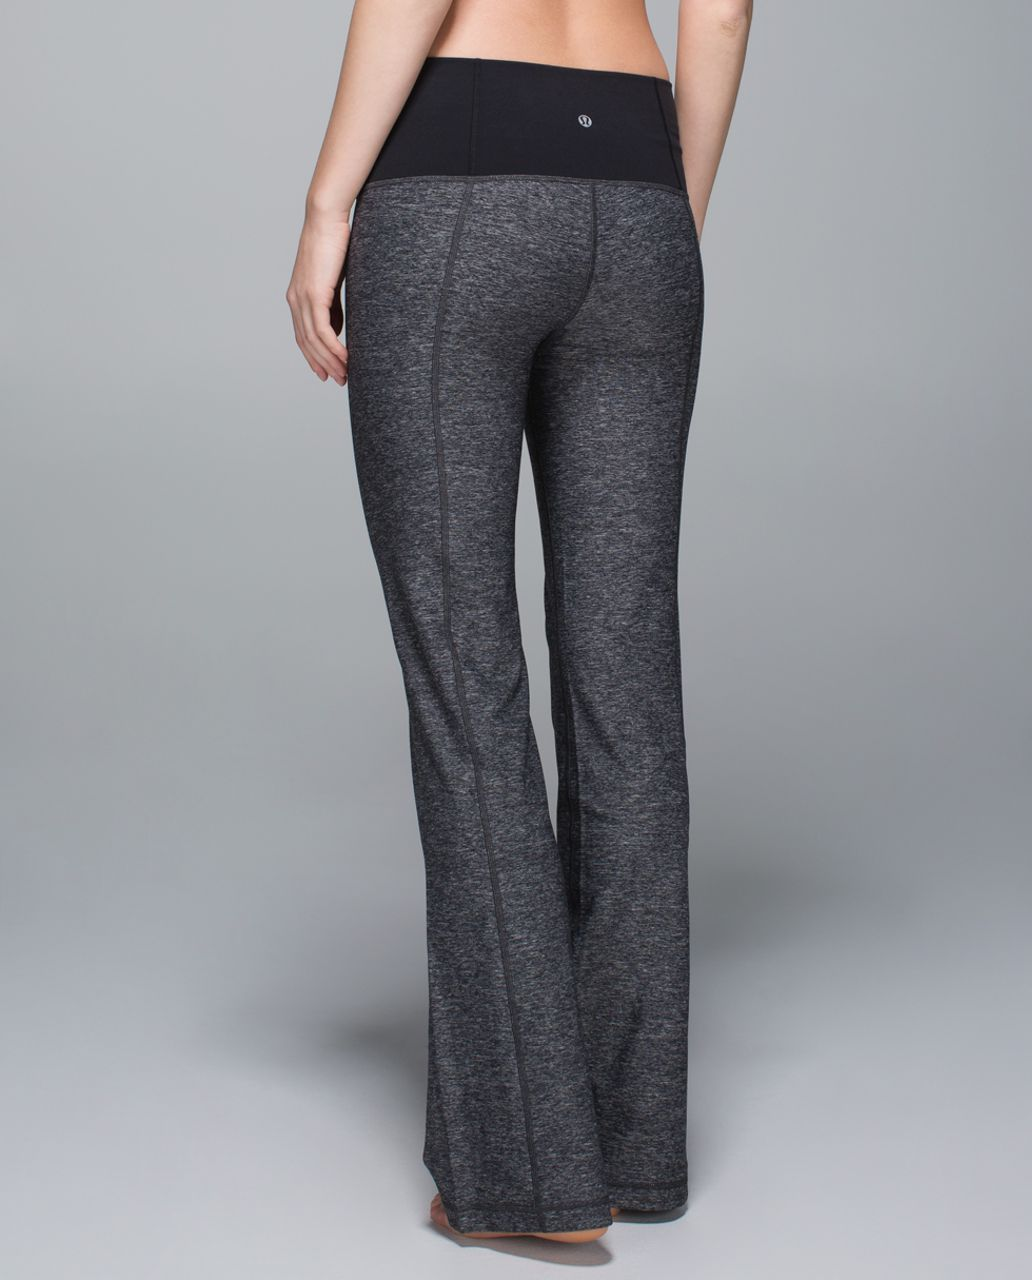 Lululemon Groove Pant II (Roll Down - Tall) - Heathered Black / Black